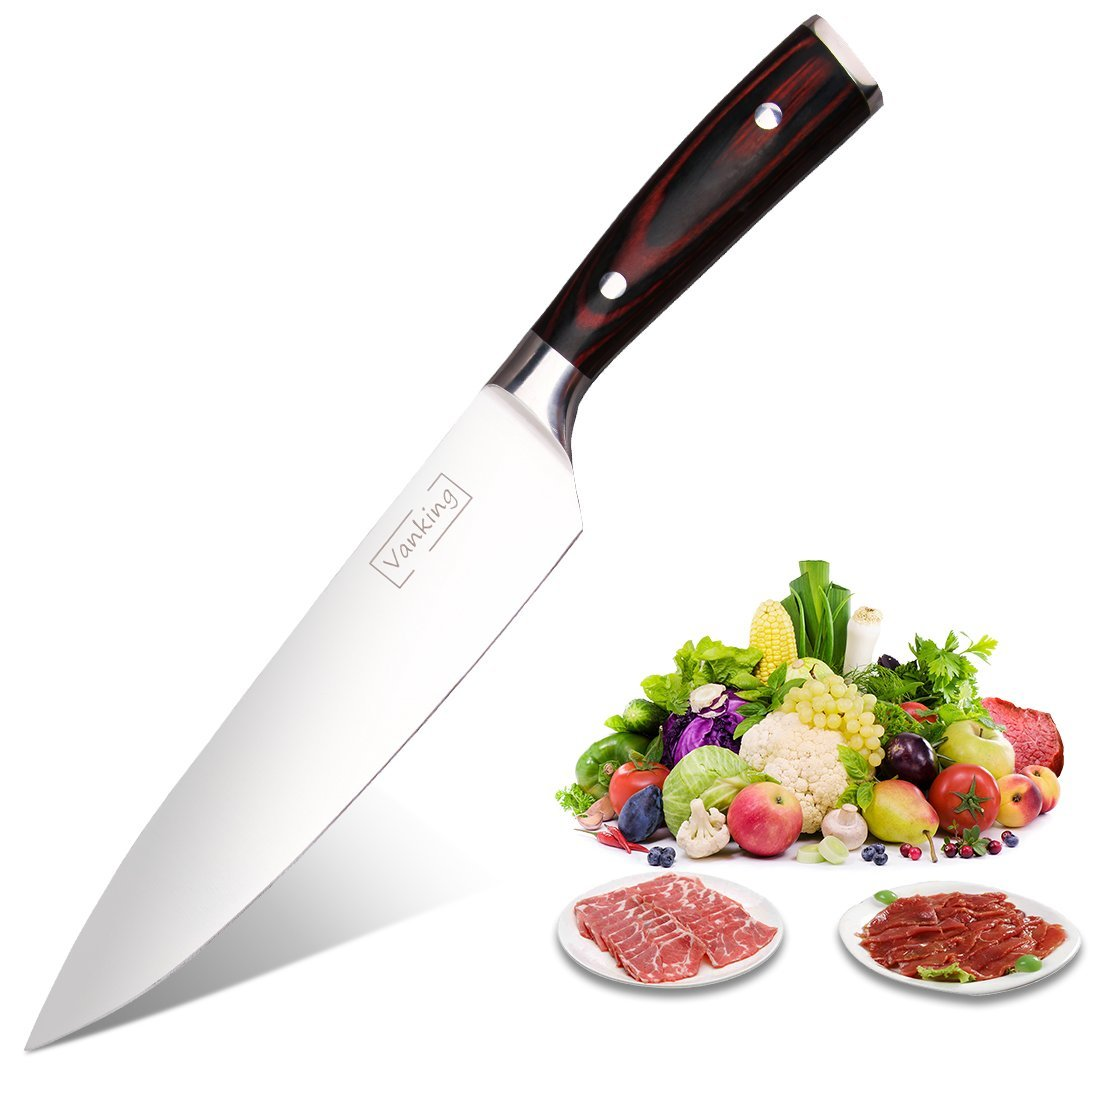 Vanking Chef Knife 8 inches, Stainless Steel Kitchen knife with Sharp Blade and Ergonomic Handle